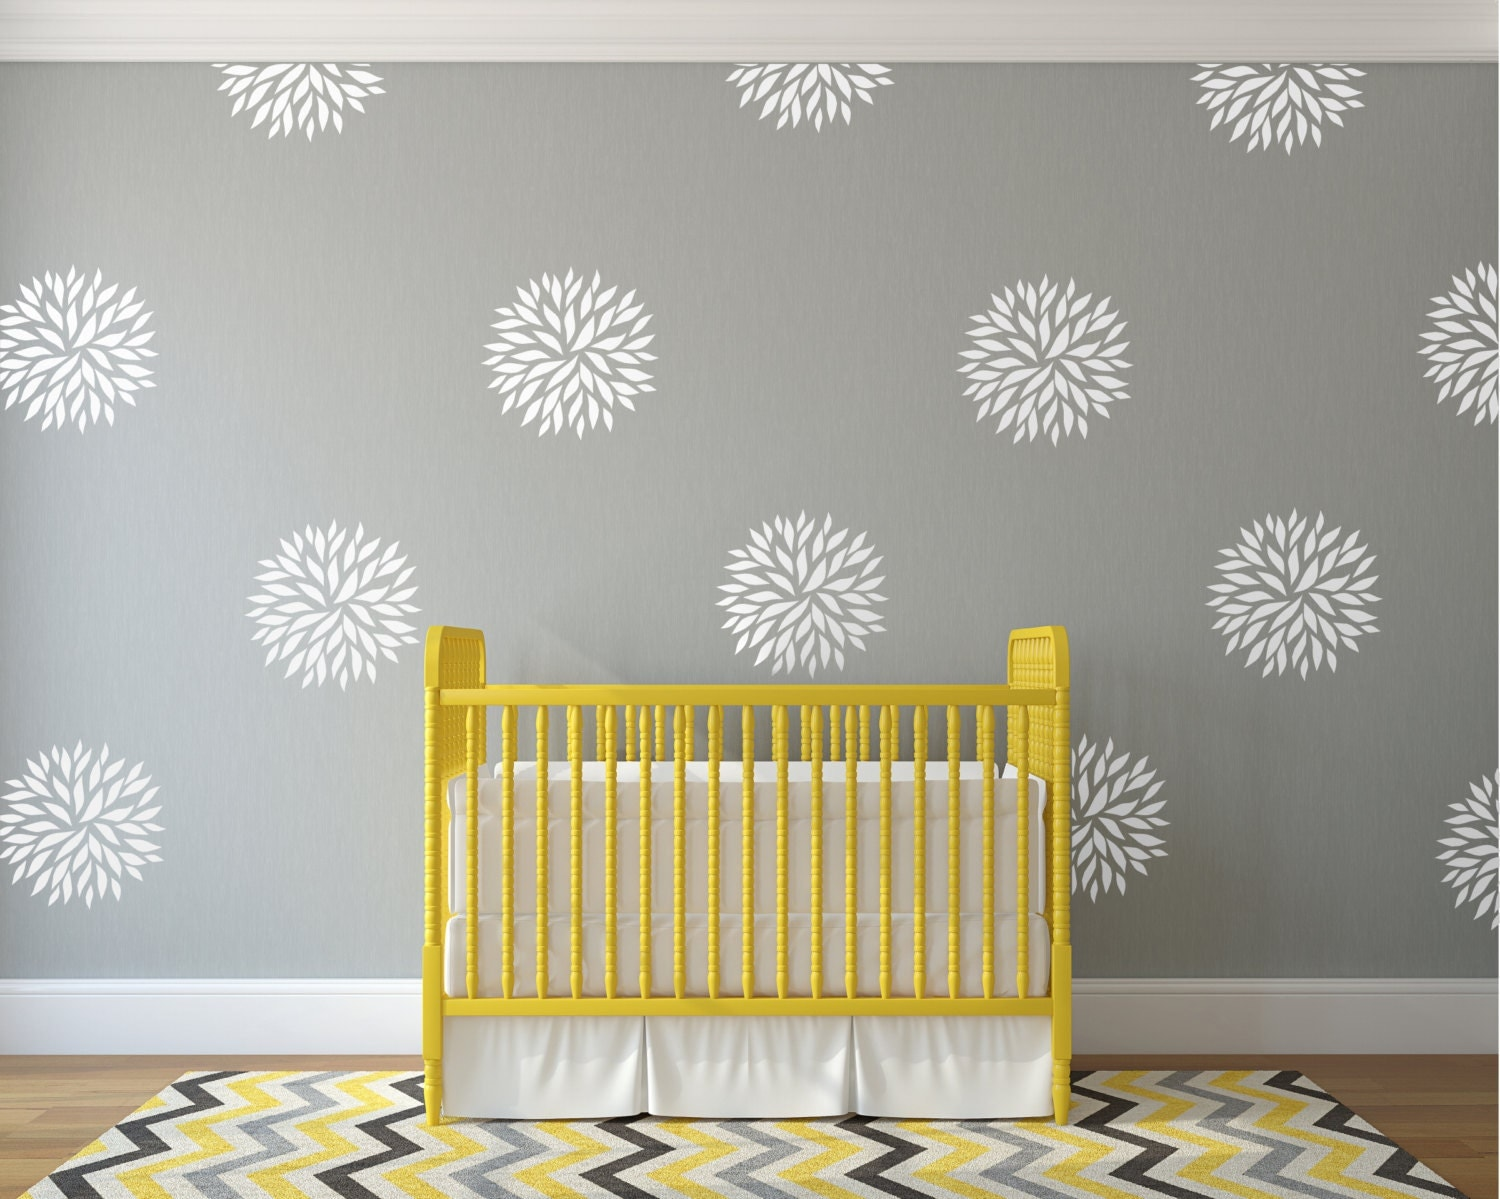 Vinyl wall decal flower blooms White wall decal pattern